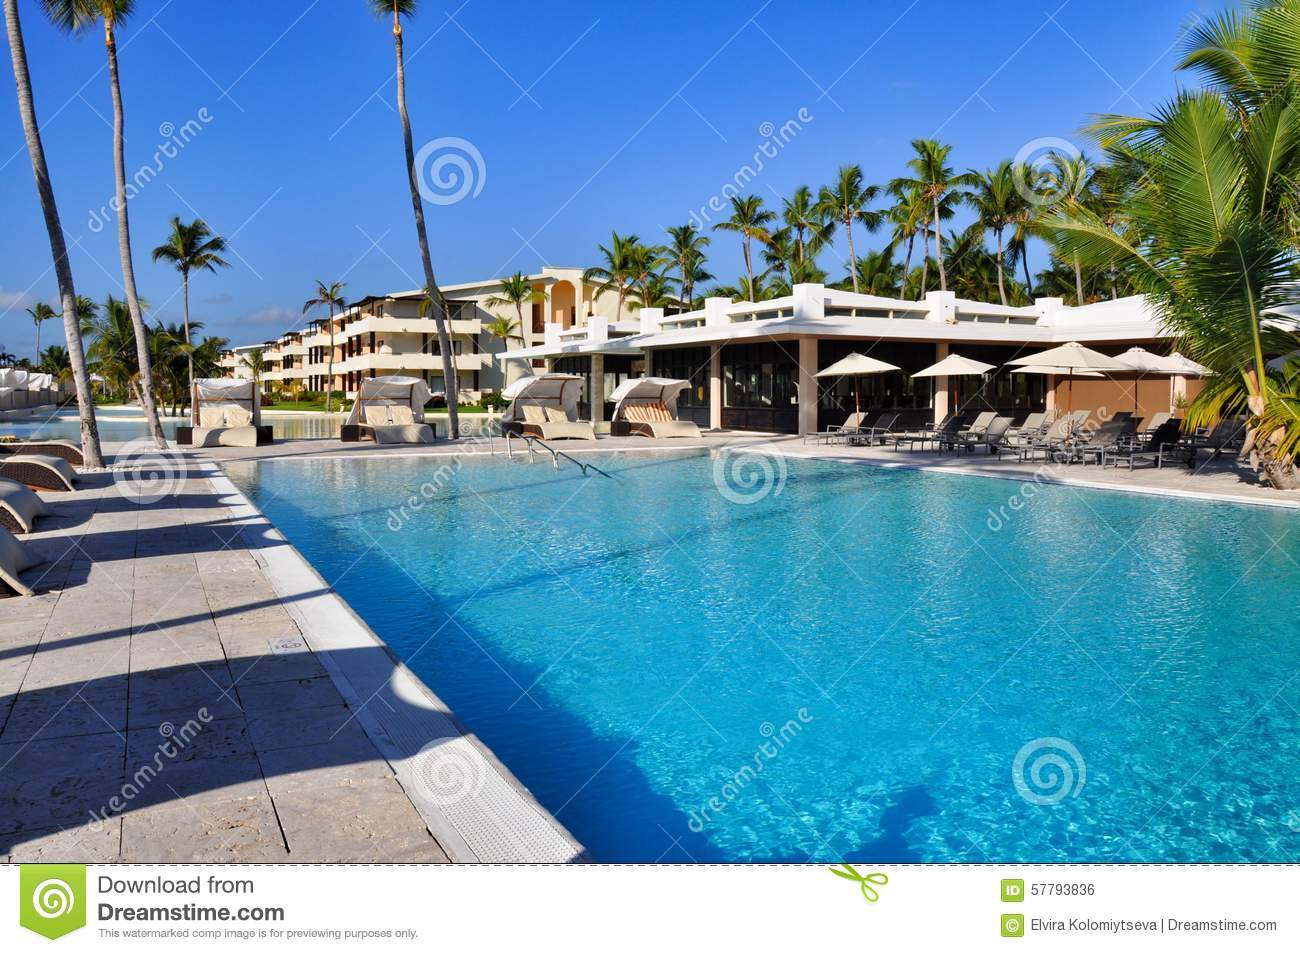 Hotel On The Beach Royalty Free Stock Image 69041248